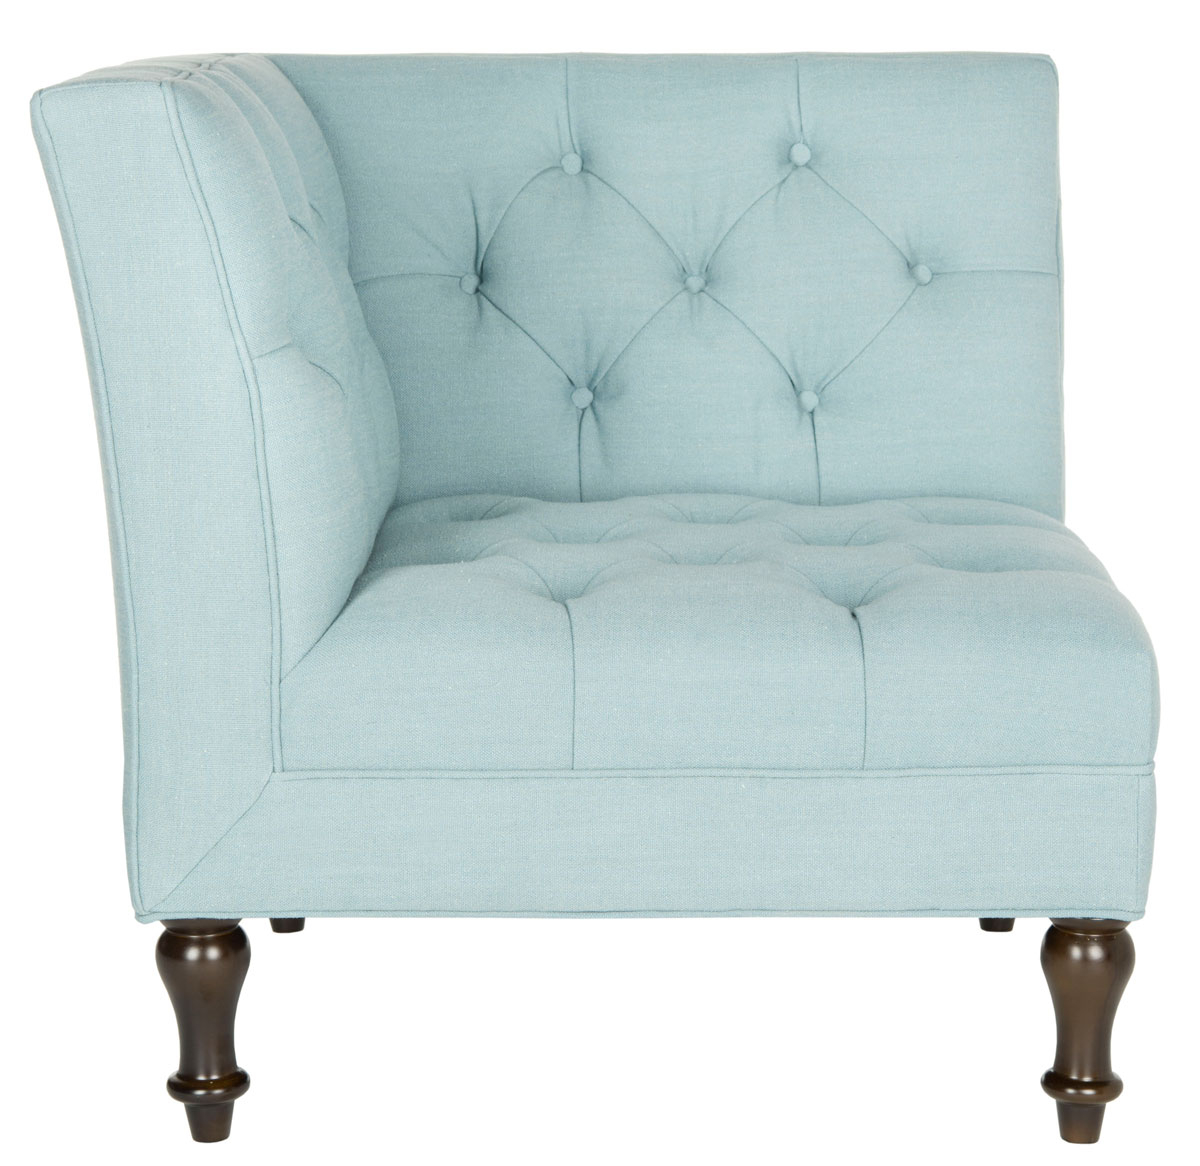 JACK TUFTED CORNER CHAIR MCR4643B ACCENT CHAIRS